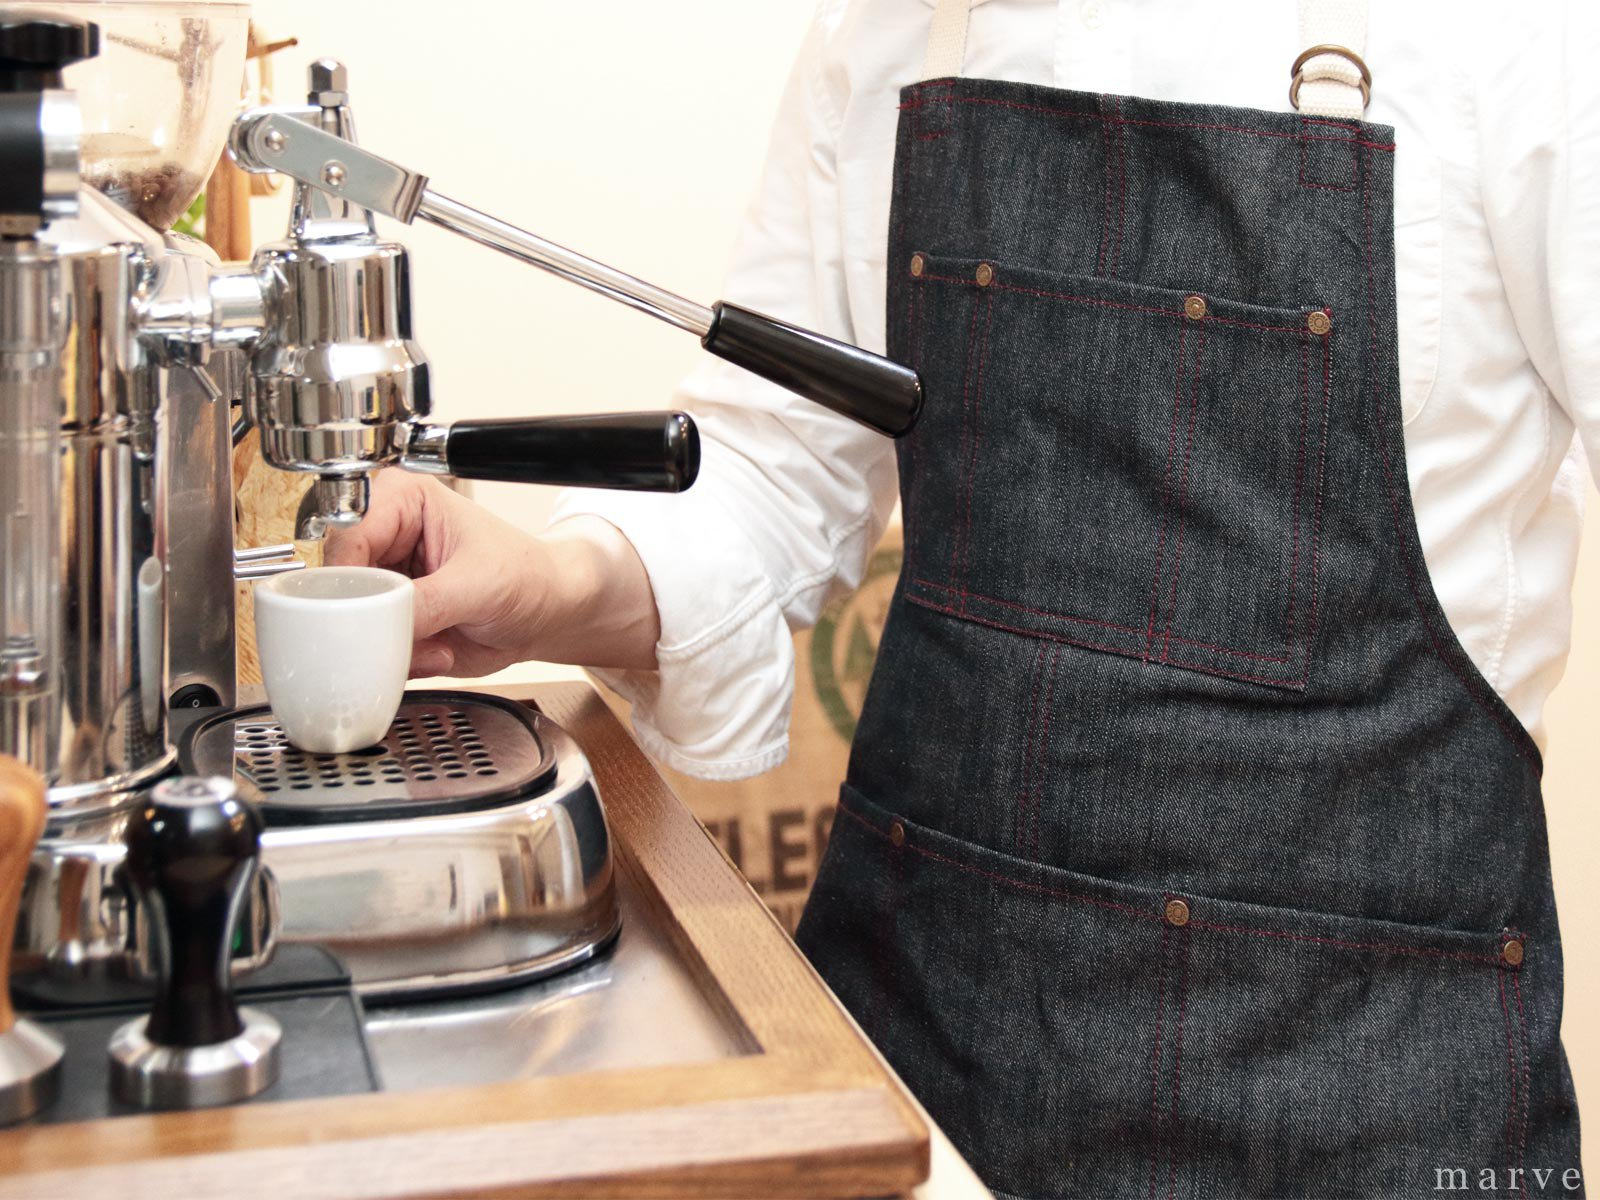 MW ワーク エプロン(WORK APRON )<img class='new_mark_img2' src='https://img.shop-pro.jp/img/new/icons55.gif' style='border:none;display:inline;margin:0px;padding:0px;width:auto;' />